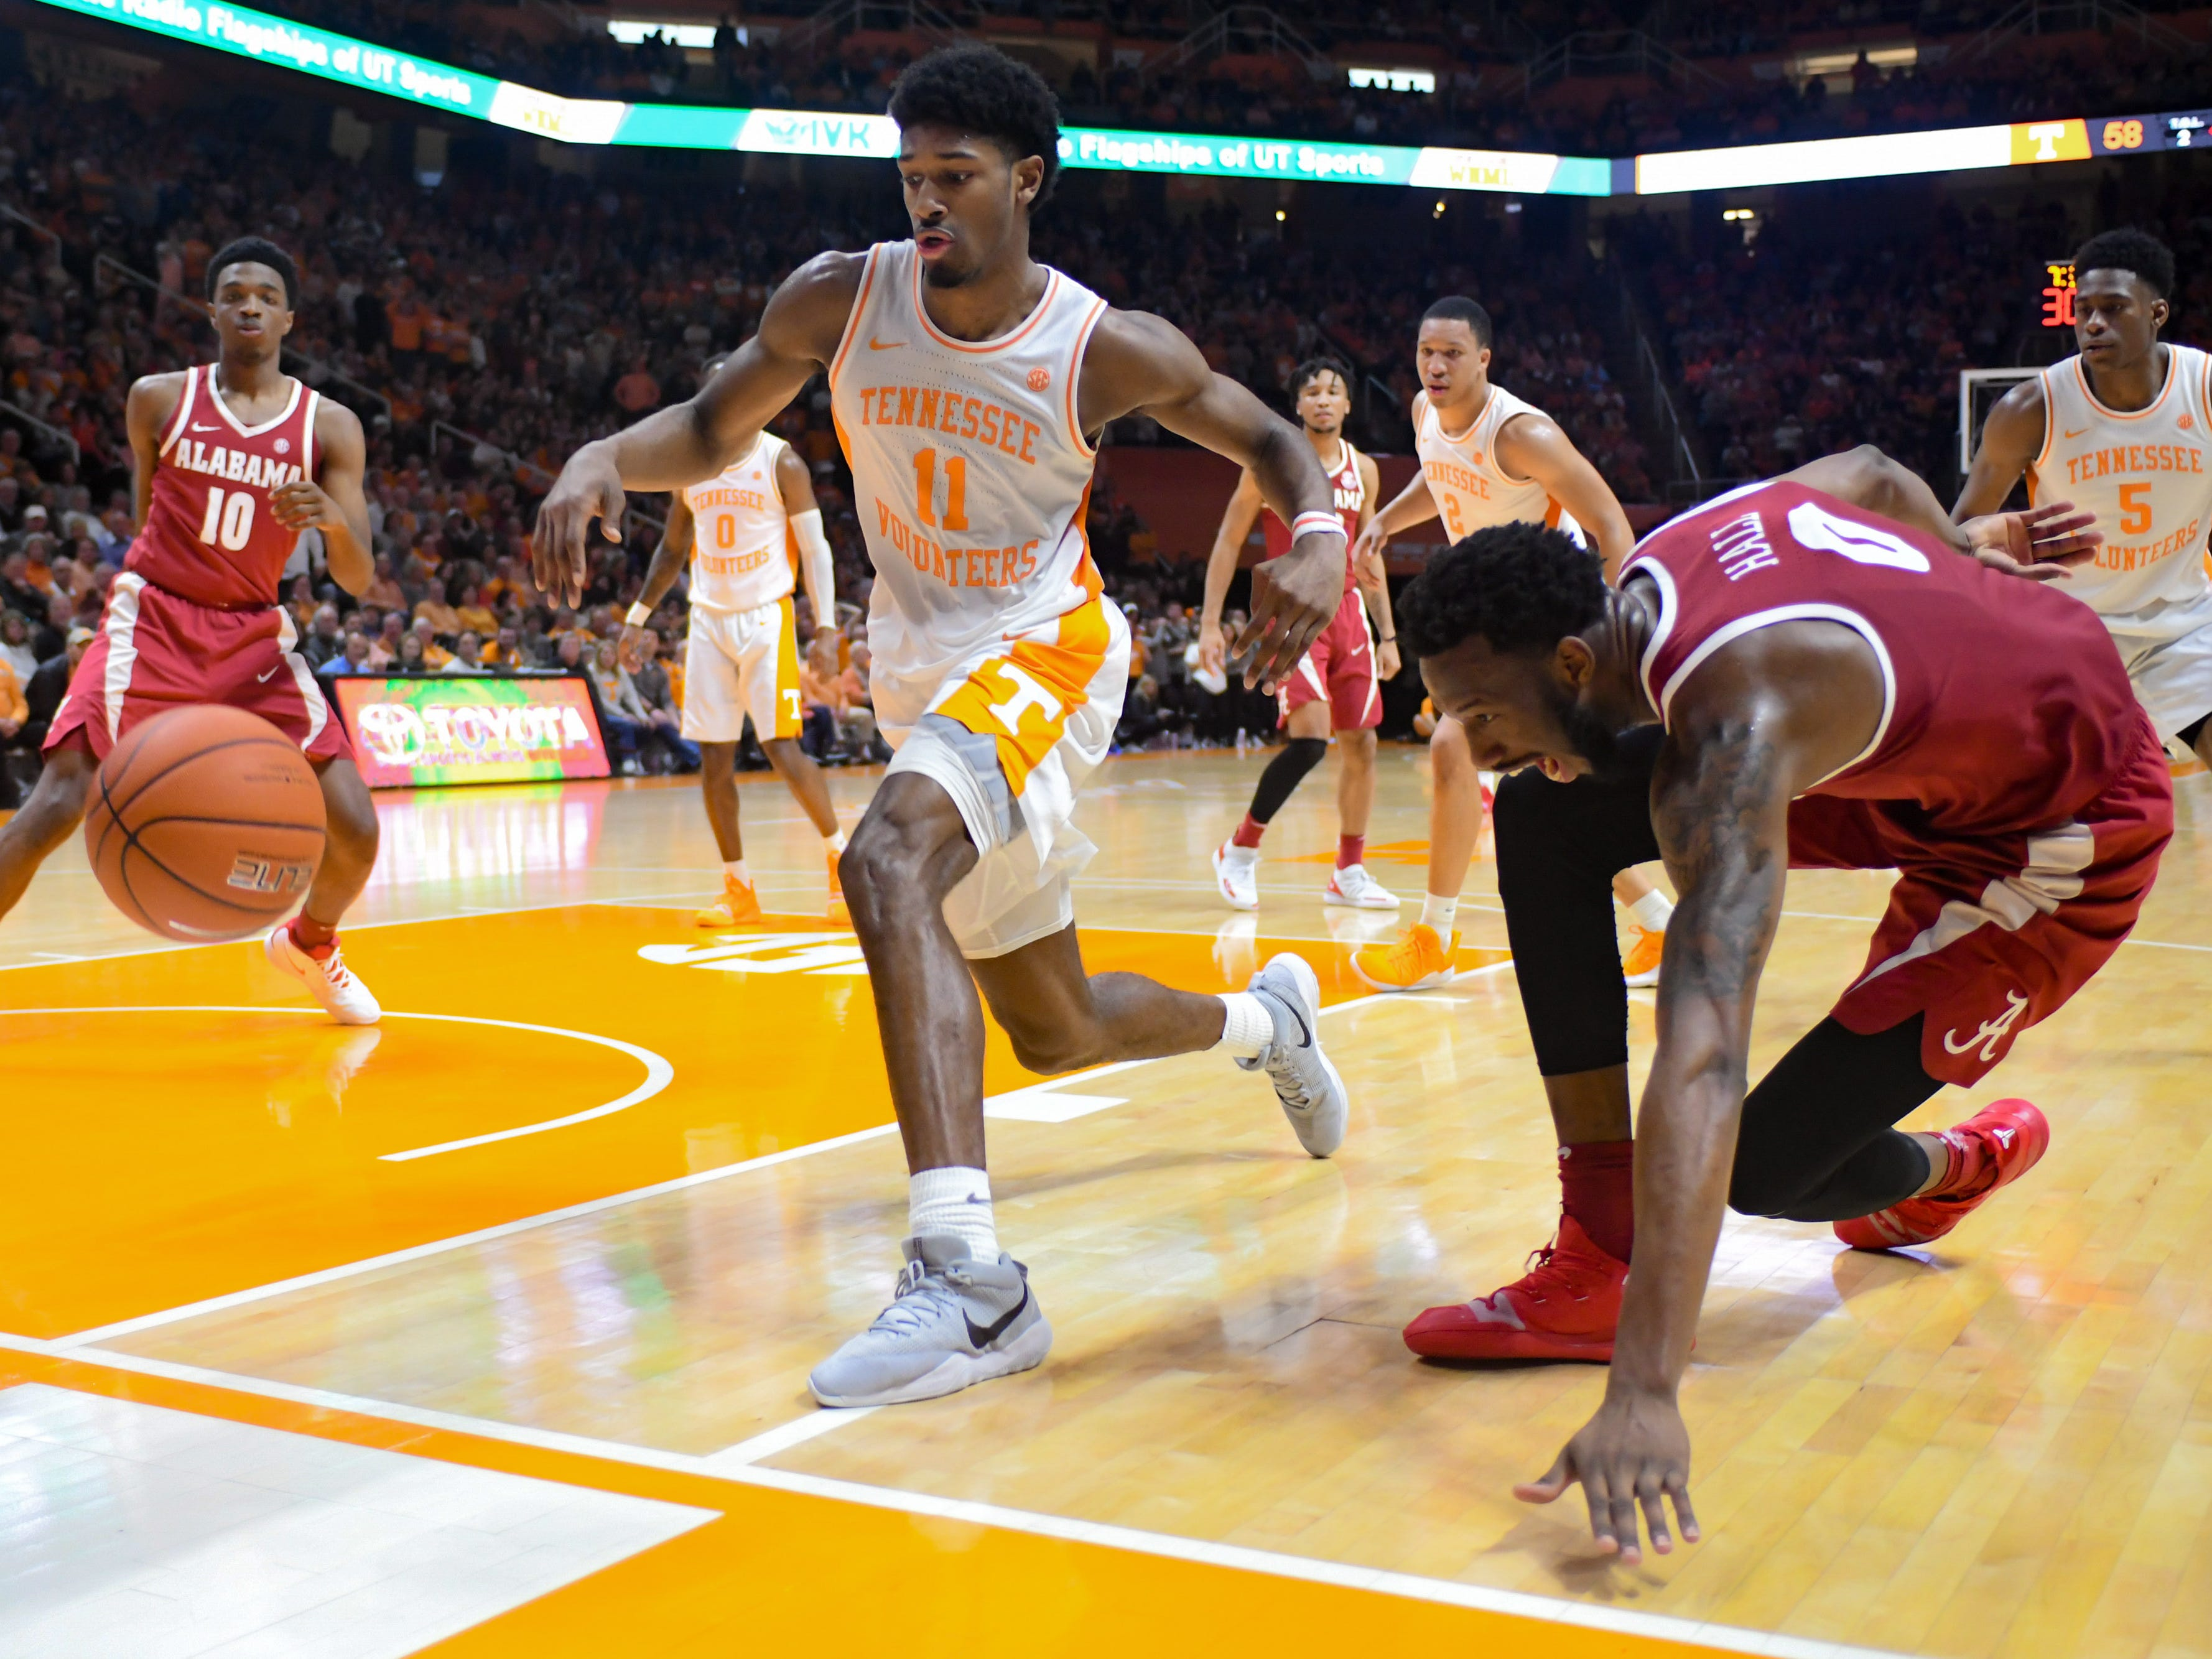 Tennessee Volunteers forward Kyle Alexander (11) and Alabama Crimson Tide forward Donta Hall (0) chase a loose ball during the second half at Thompson-Boling Arena.